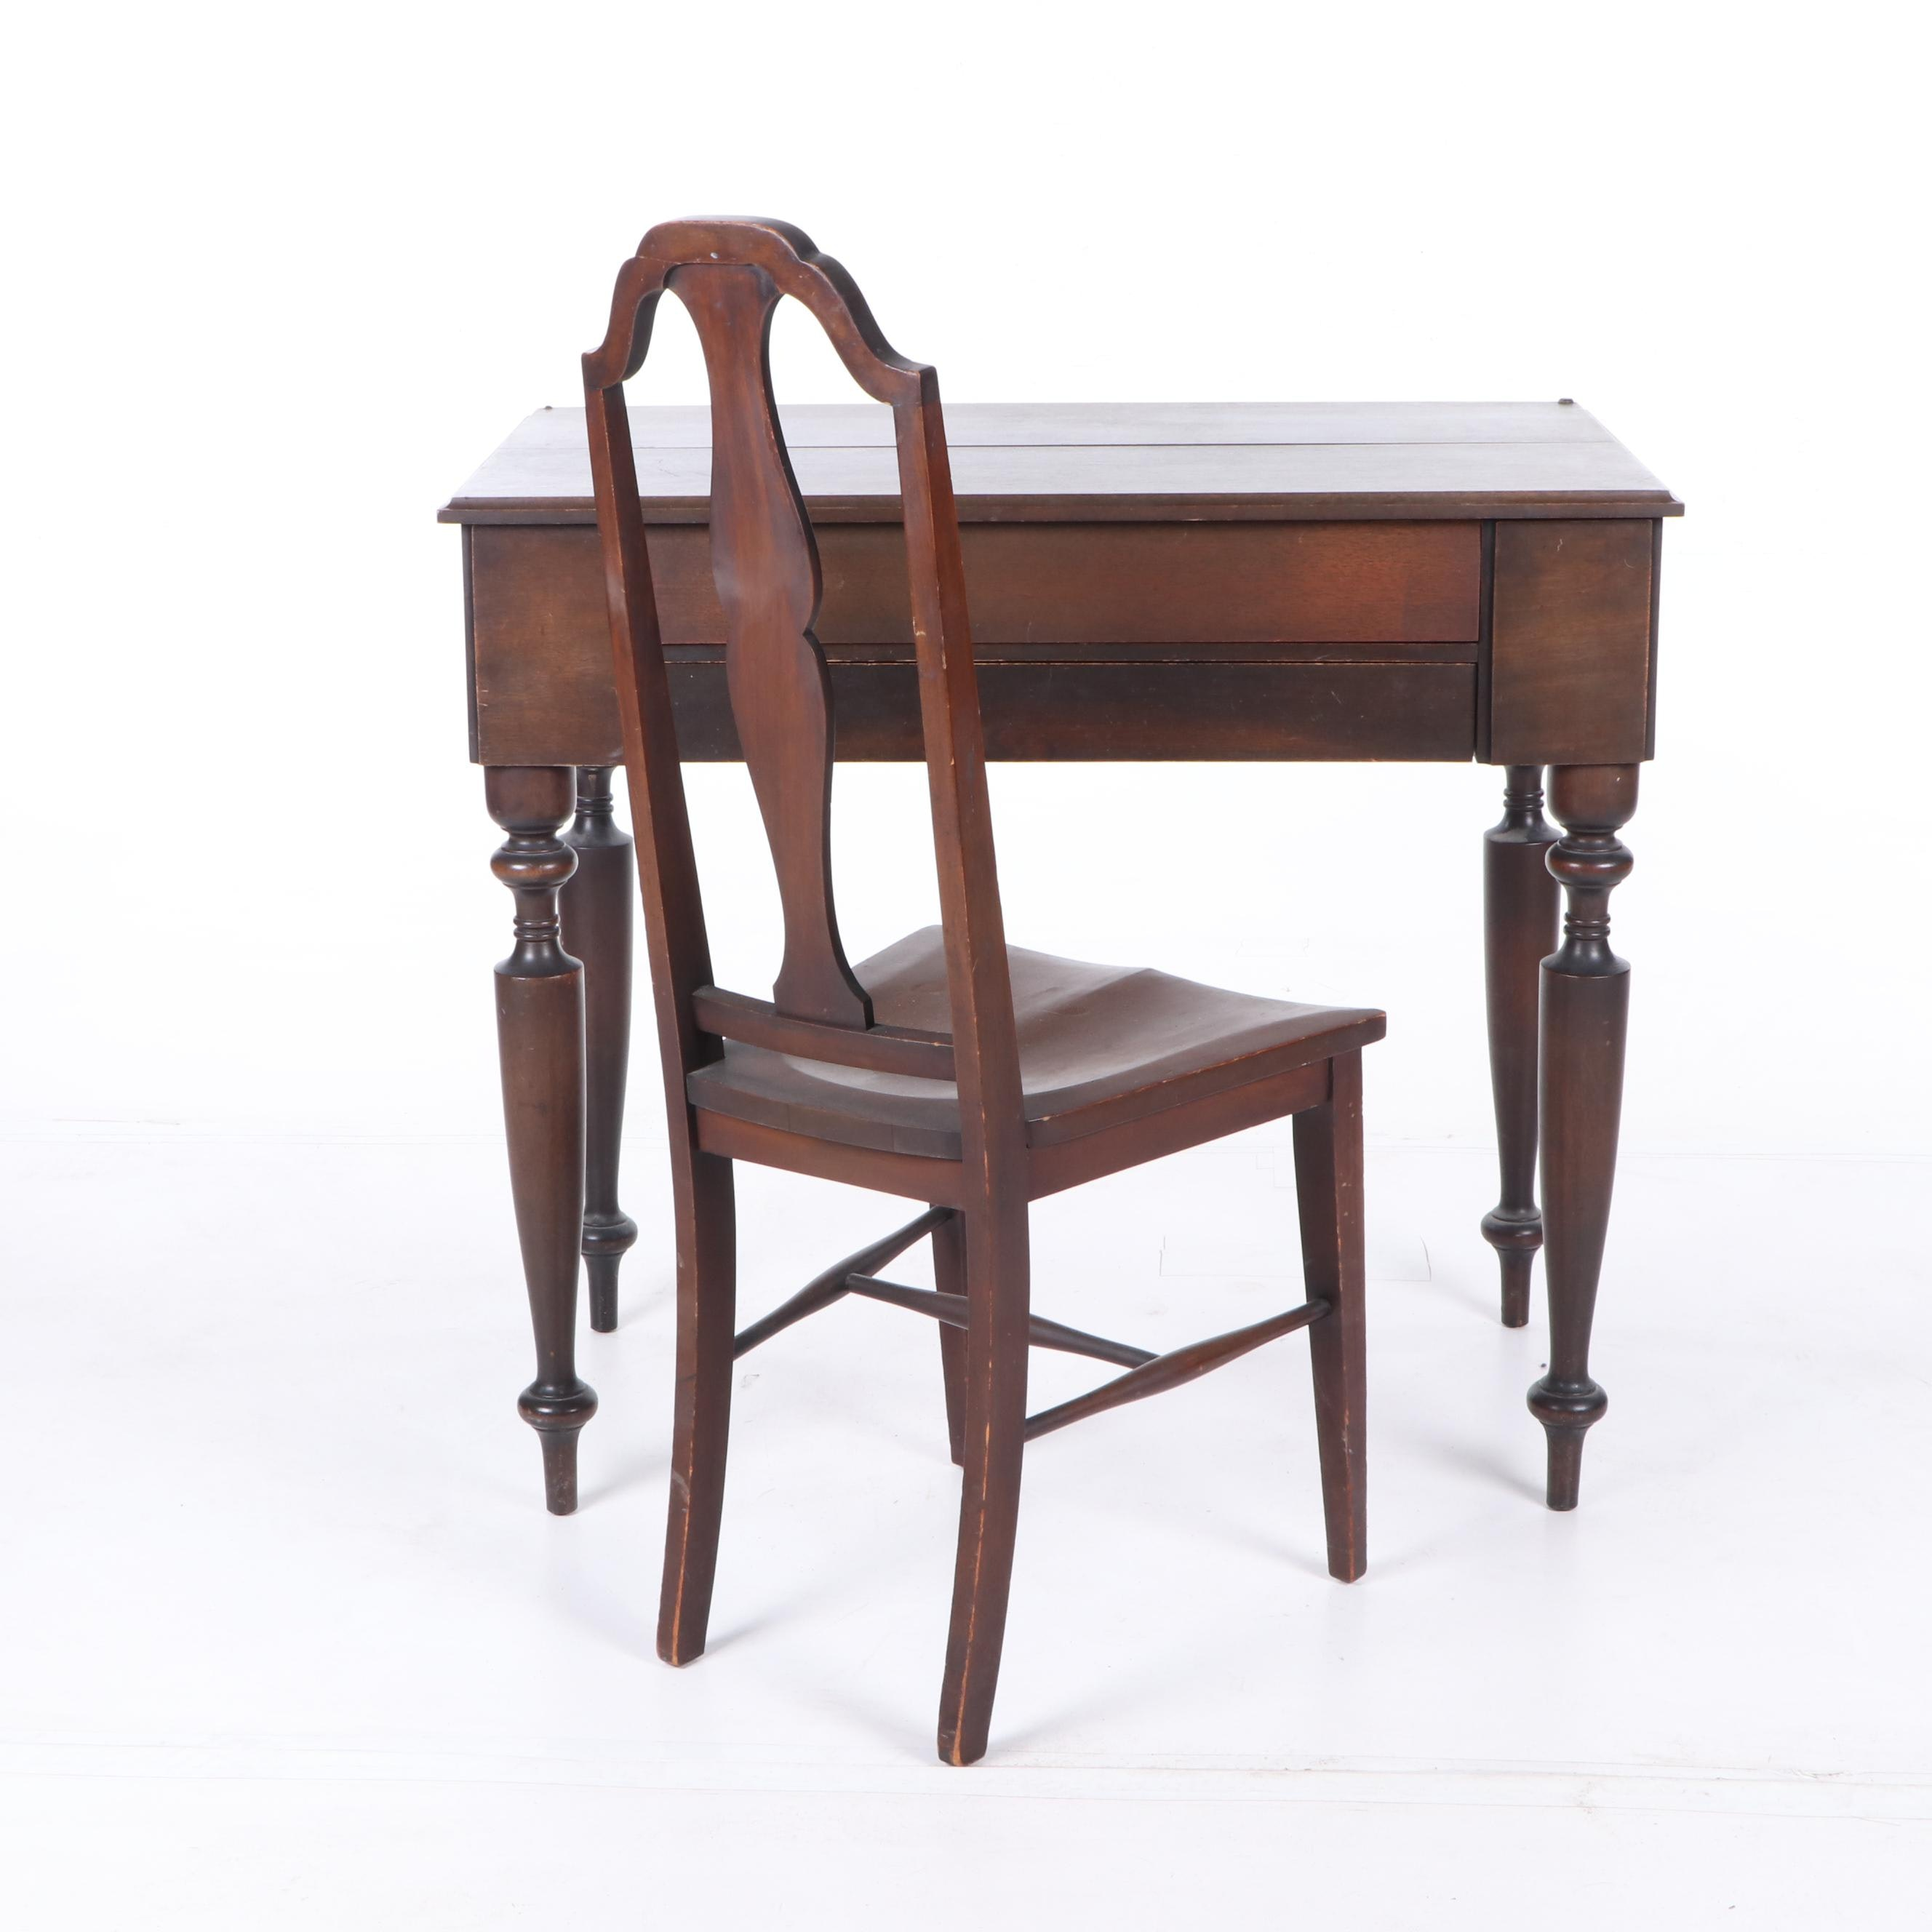 Colonial Manufacturing Company Desk and Chair